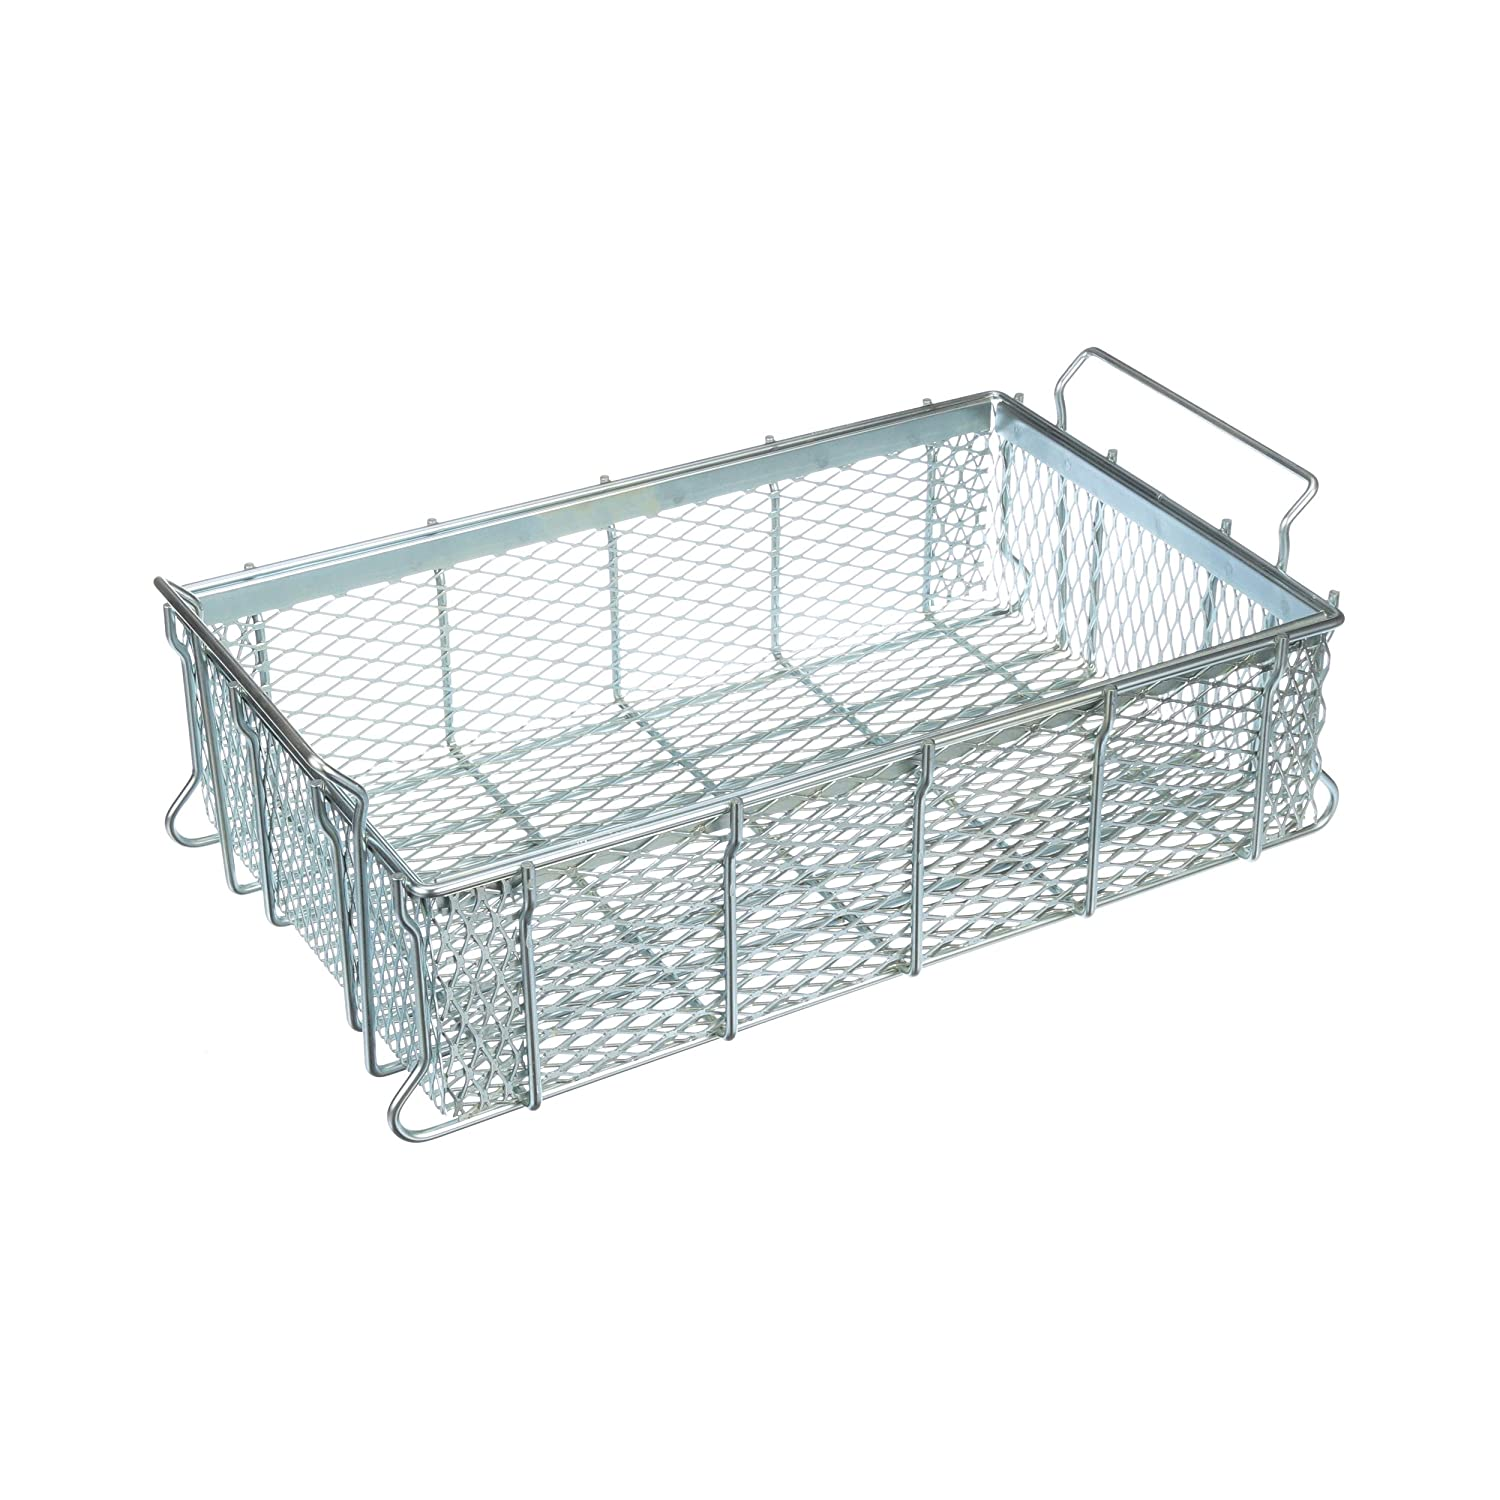 Marlin Steel Expanded Metal Tote Plain New popularity Plate Free shipping on posting reviews Basket Zinc